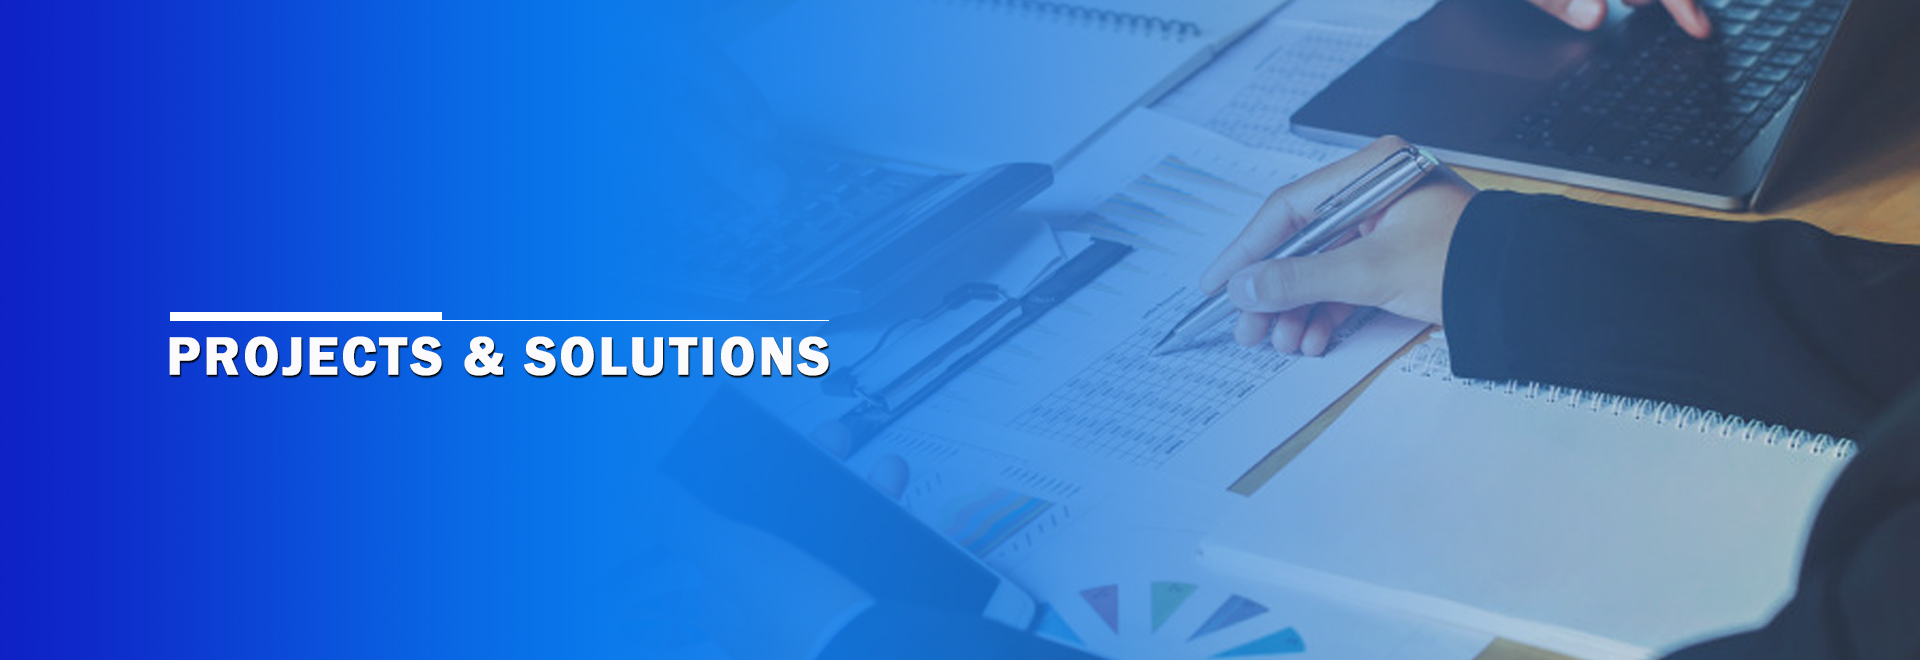 PROJECTS & SOLUTIONS